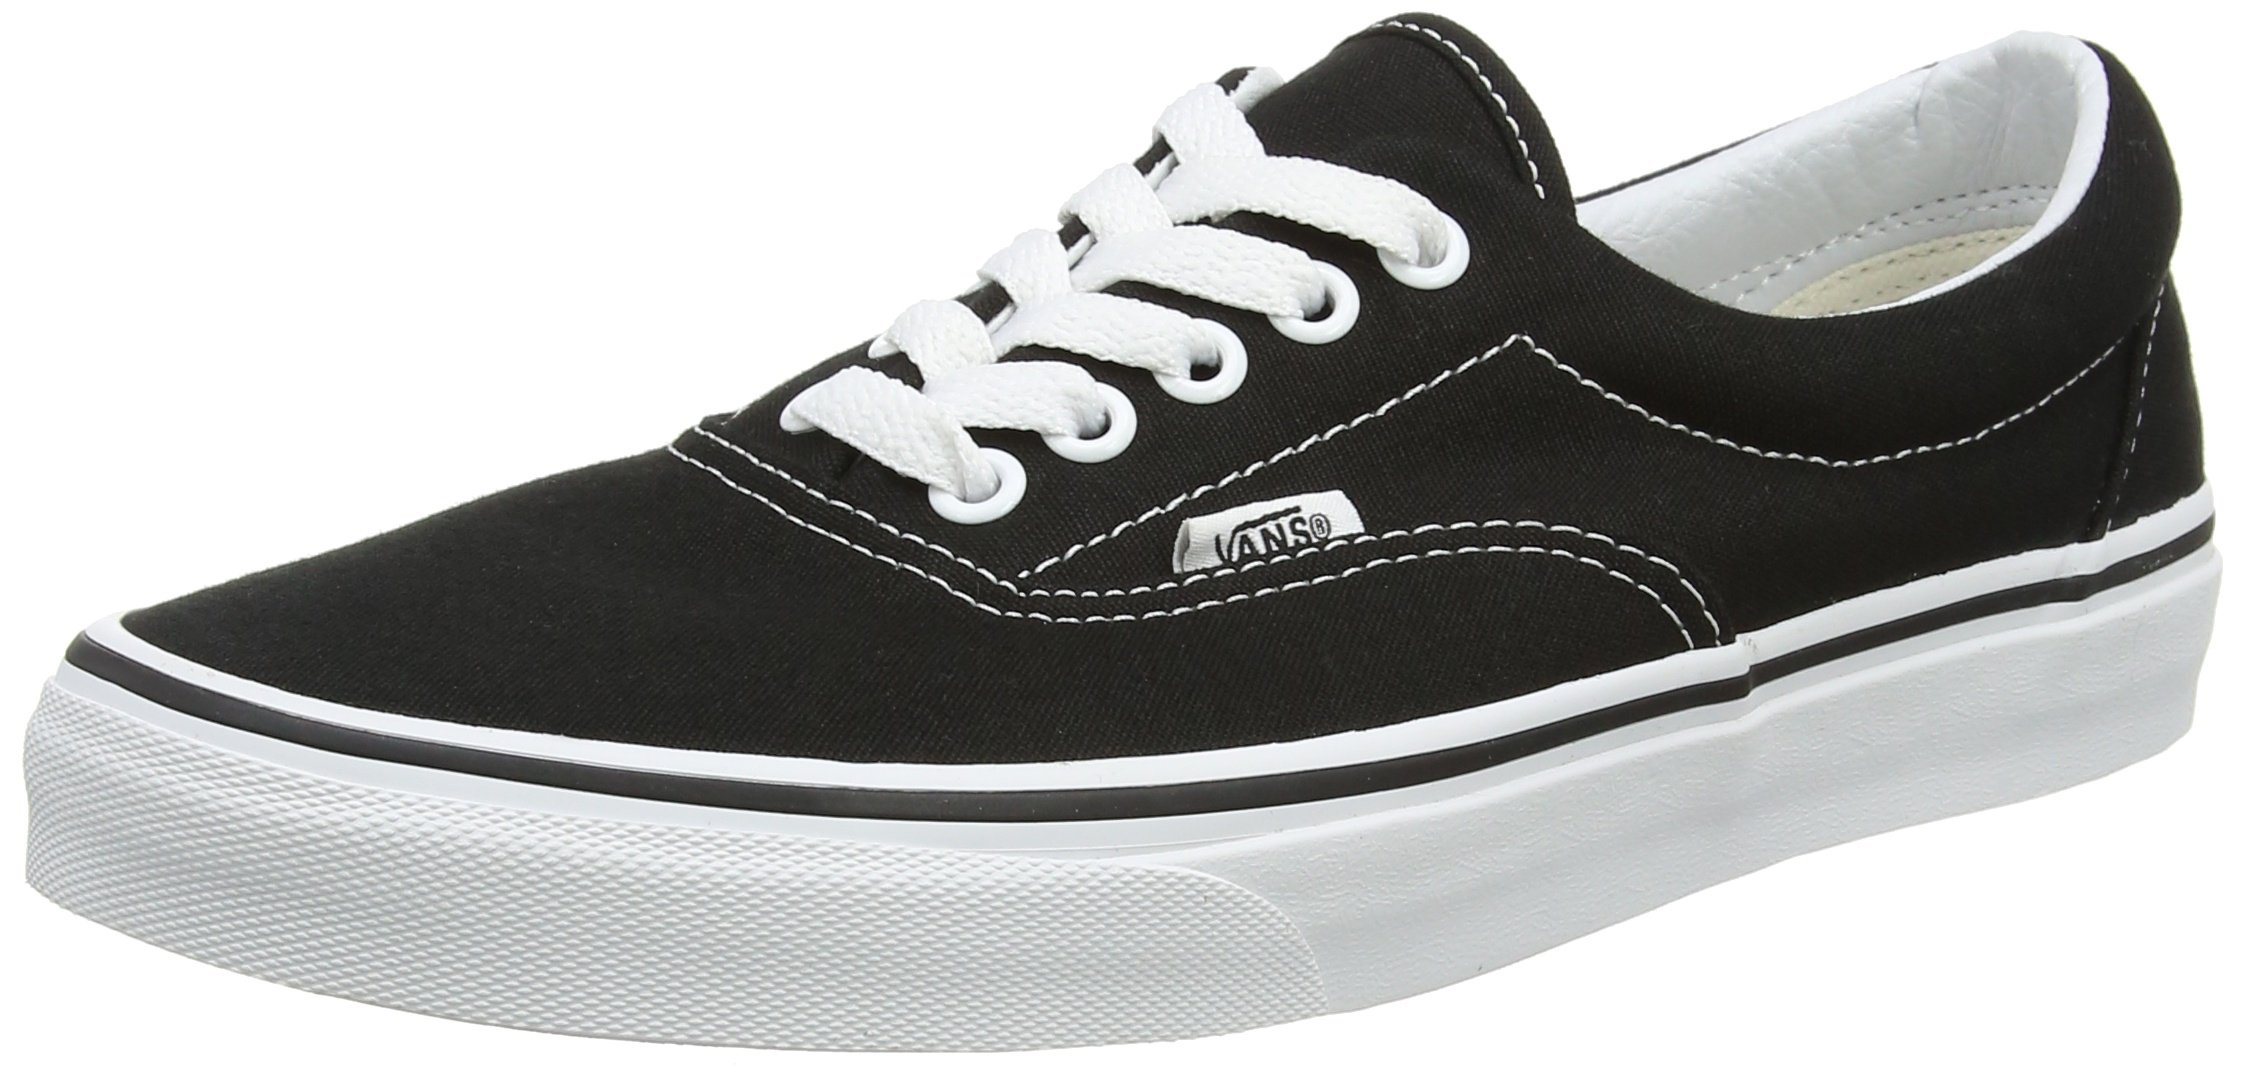 41719da7e6 Vans VEWZNVY Unisex Era Canvas Skate Shoes